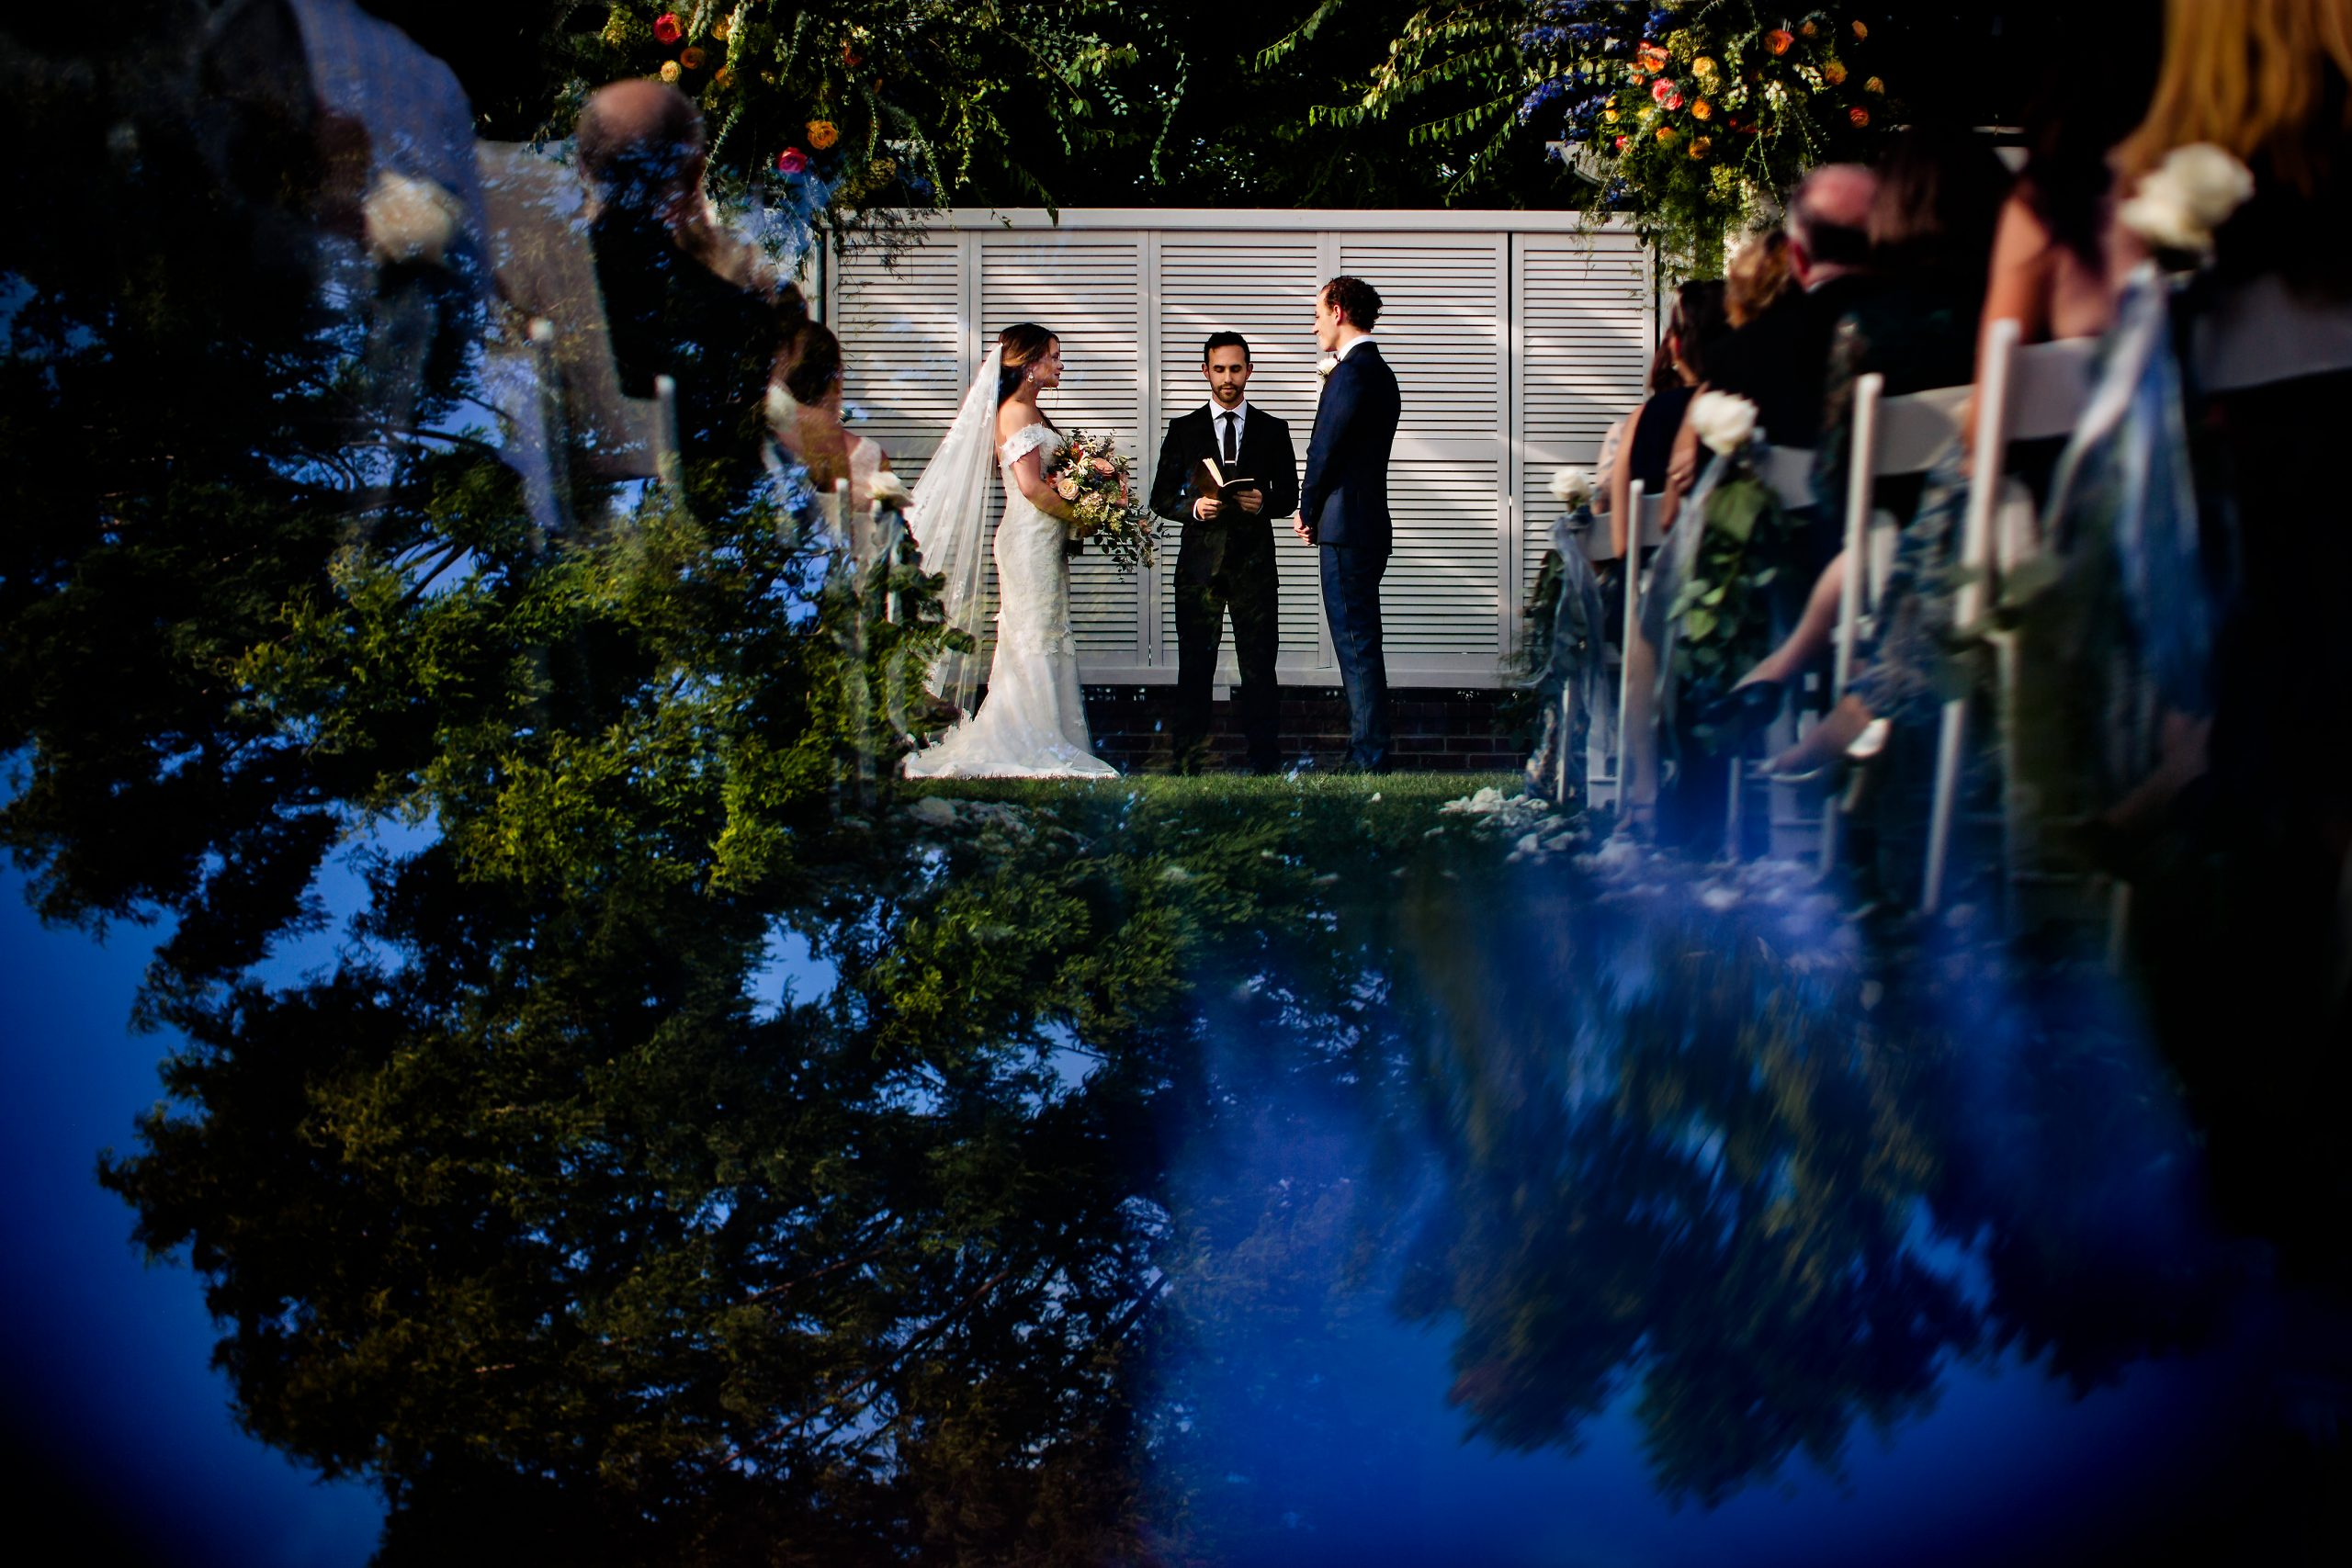 An outdoor wedding ceremony on a day with bright skies